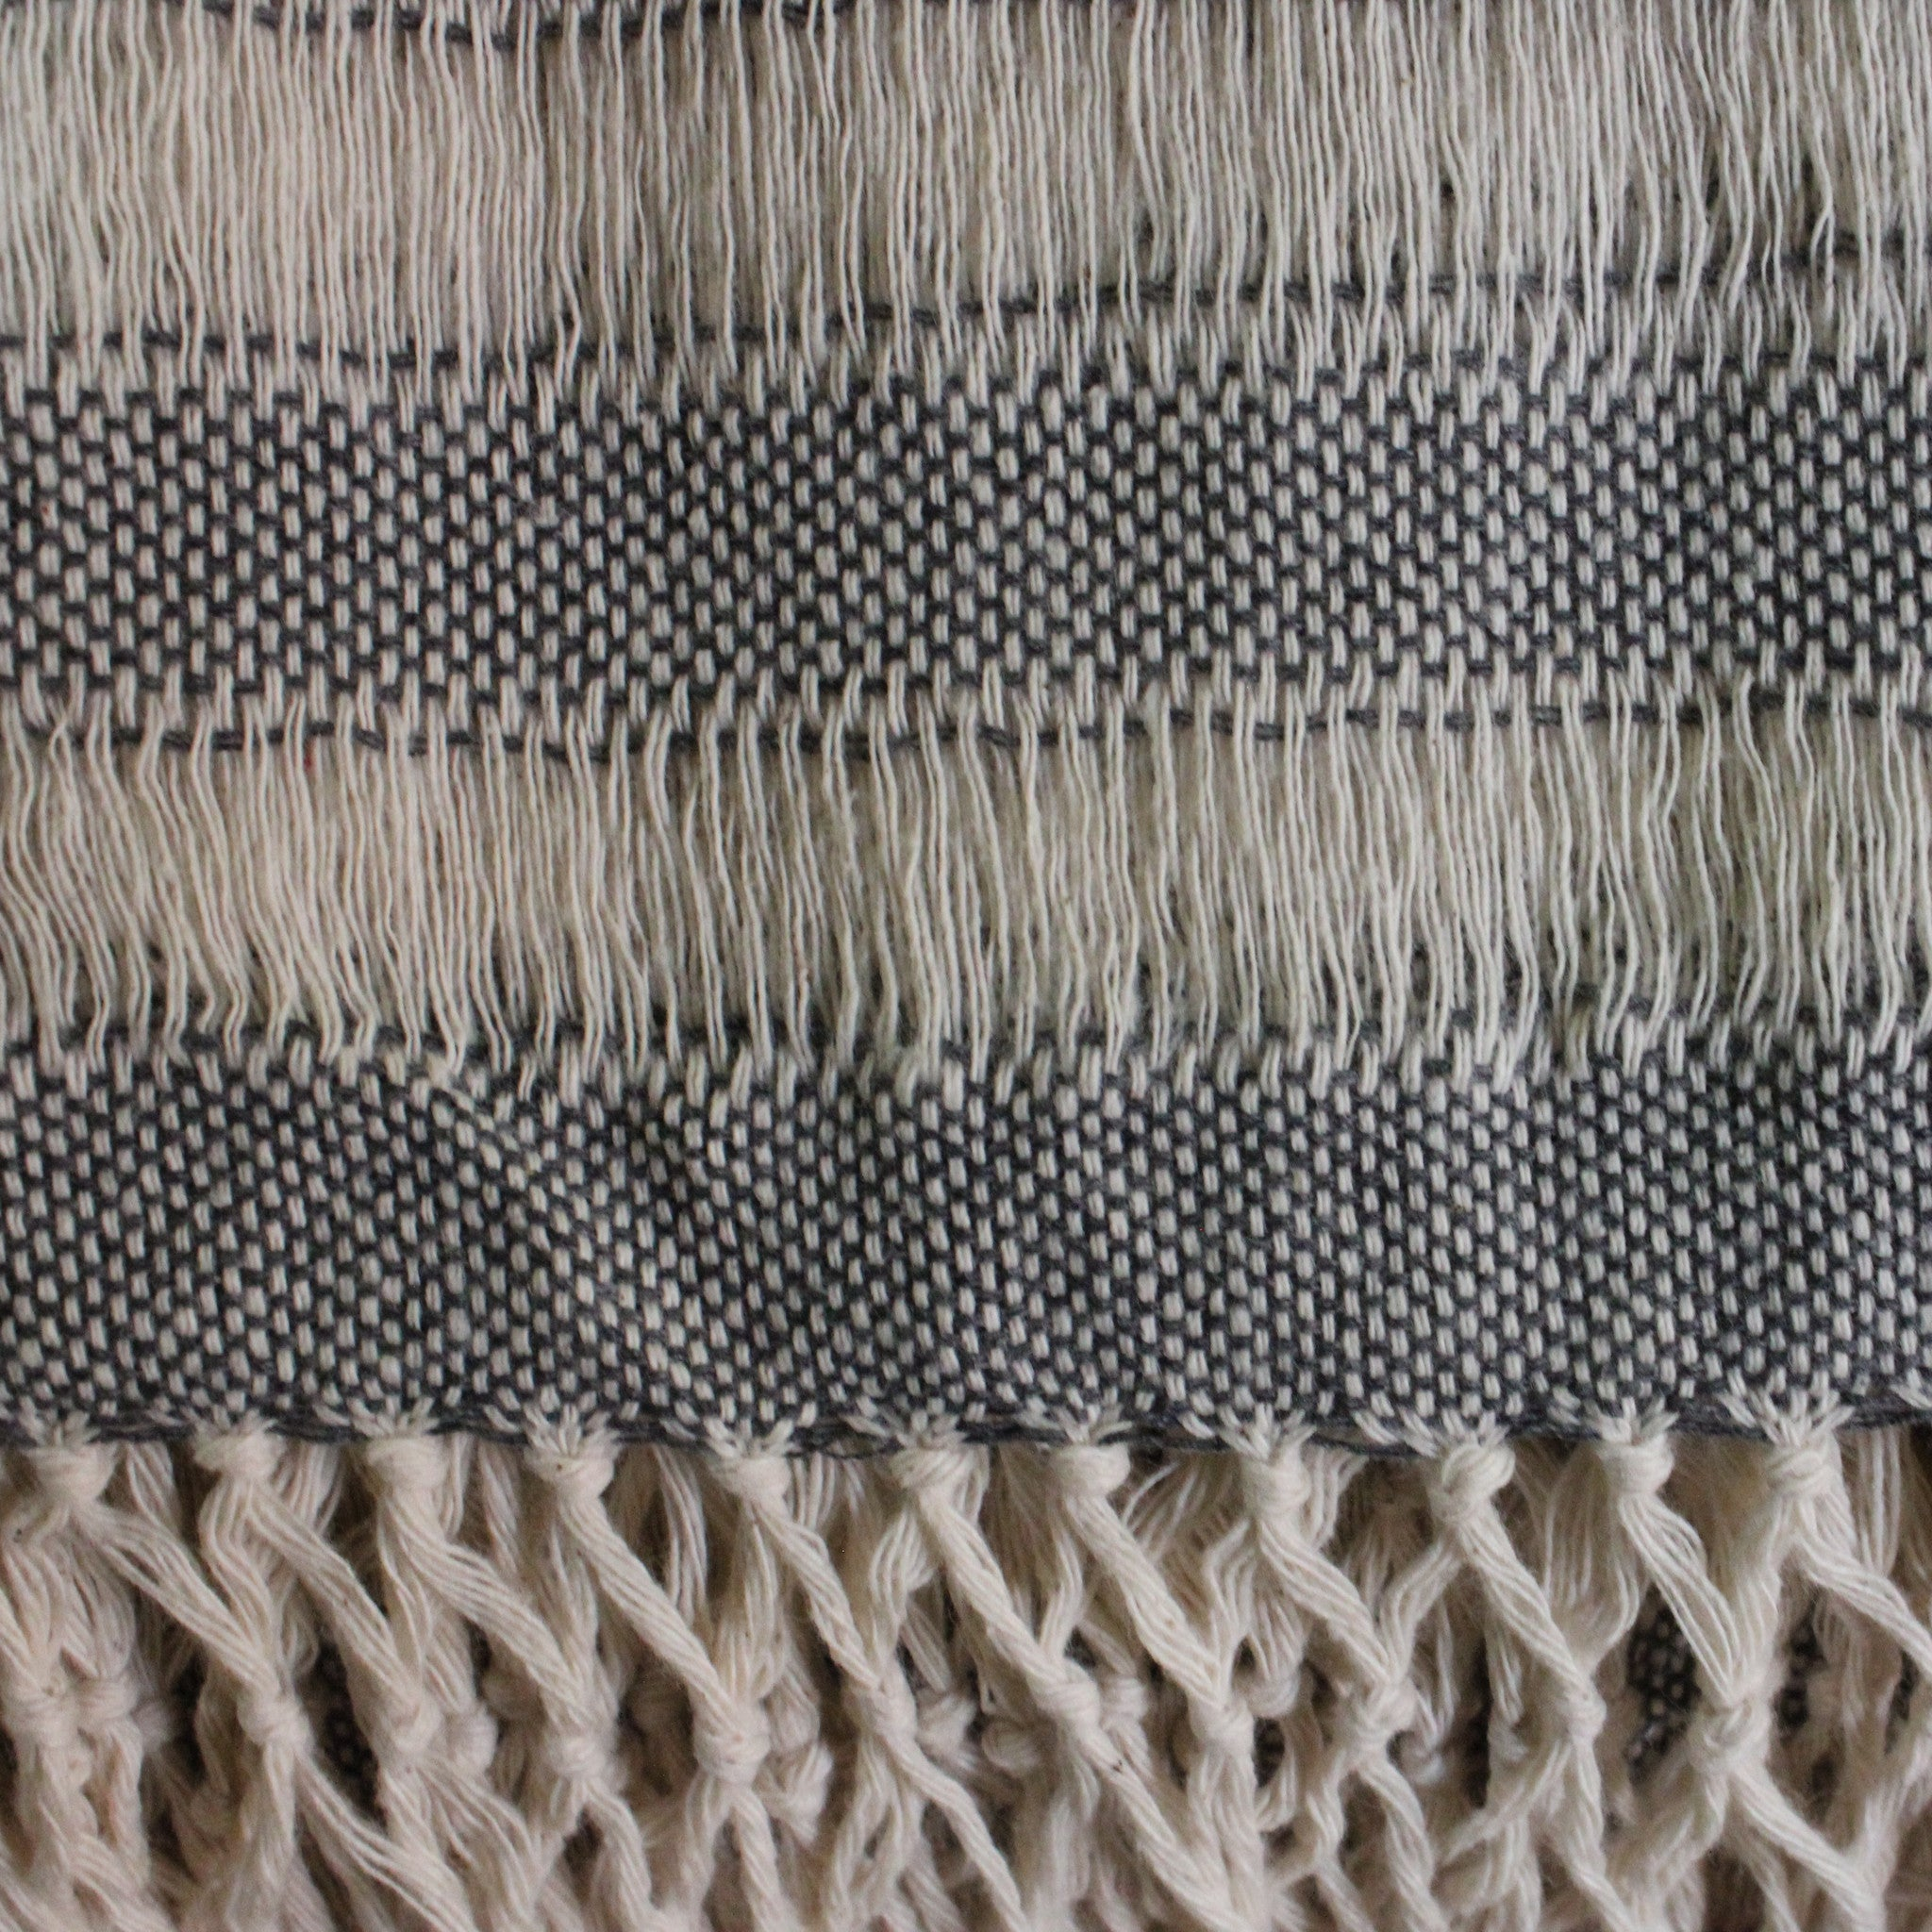 Handwoven cotton scarf handmade in Nicaragua by Living Threads Co. artisan - in grey